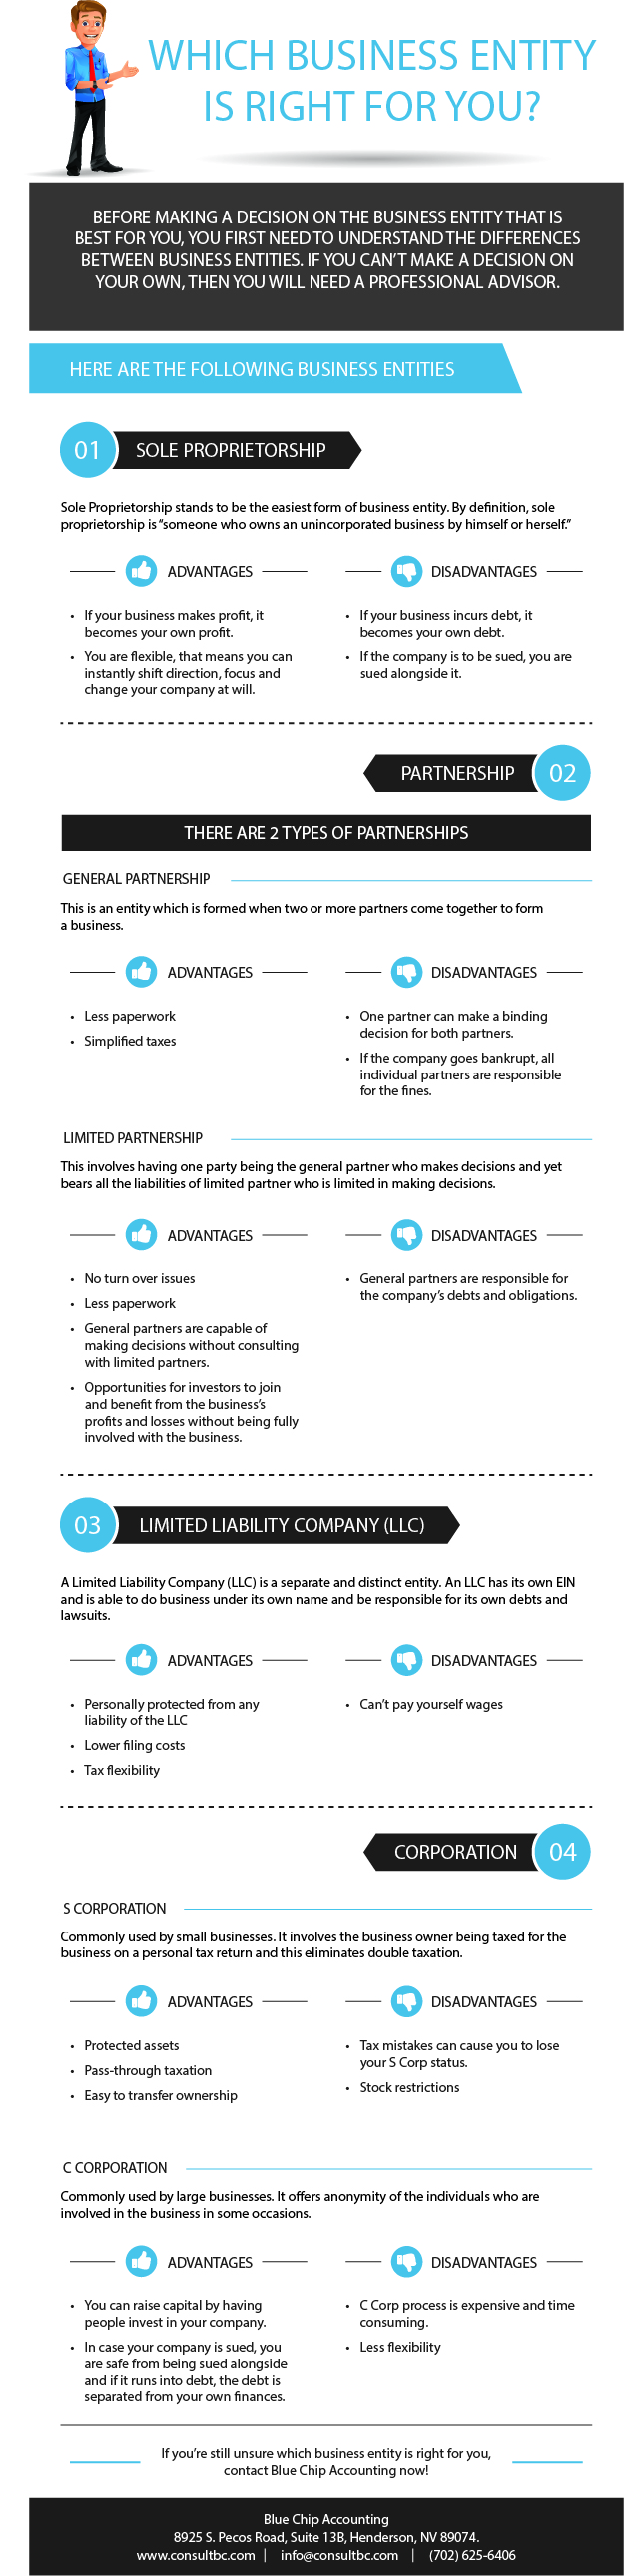 Edited Business_Entity_Infographic4